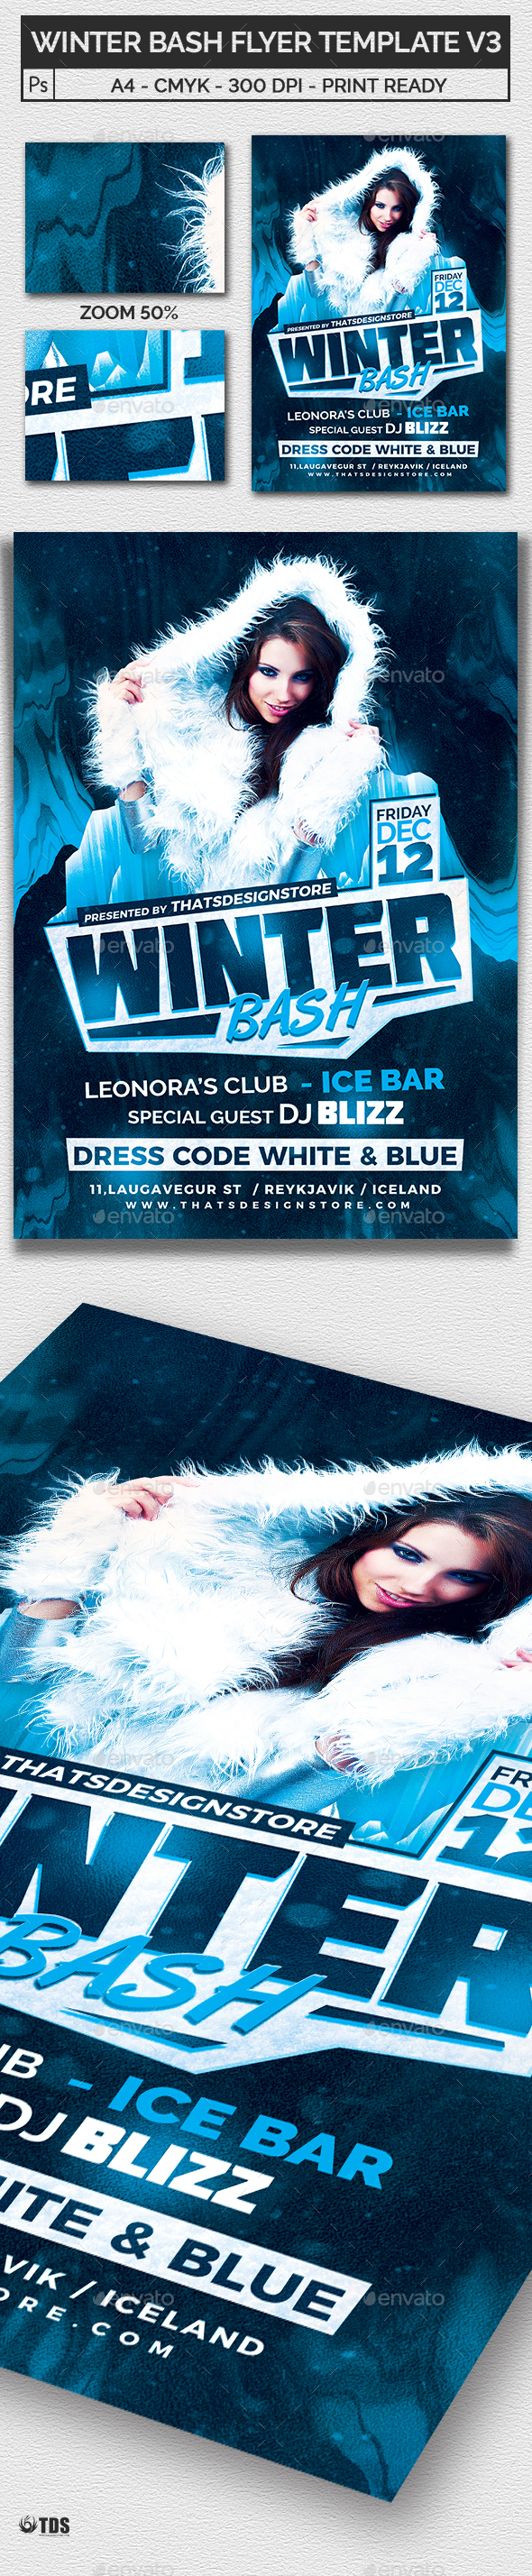 Winter Bash Flyer Template V3 - Clubs & Parties Events